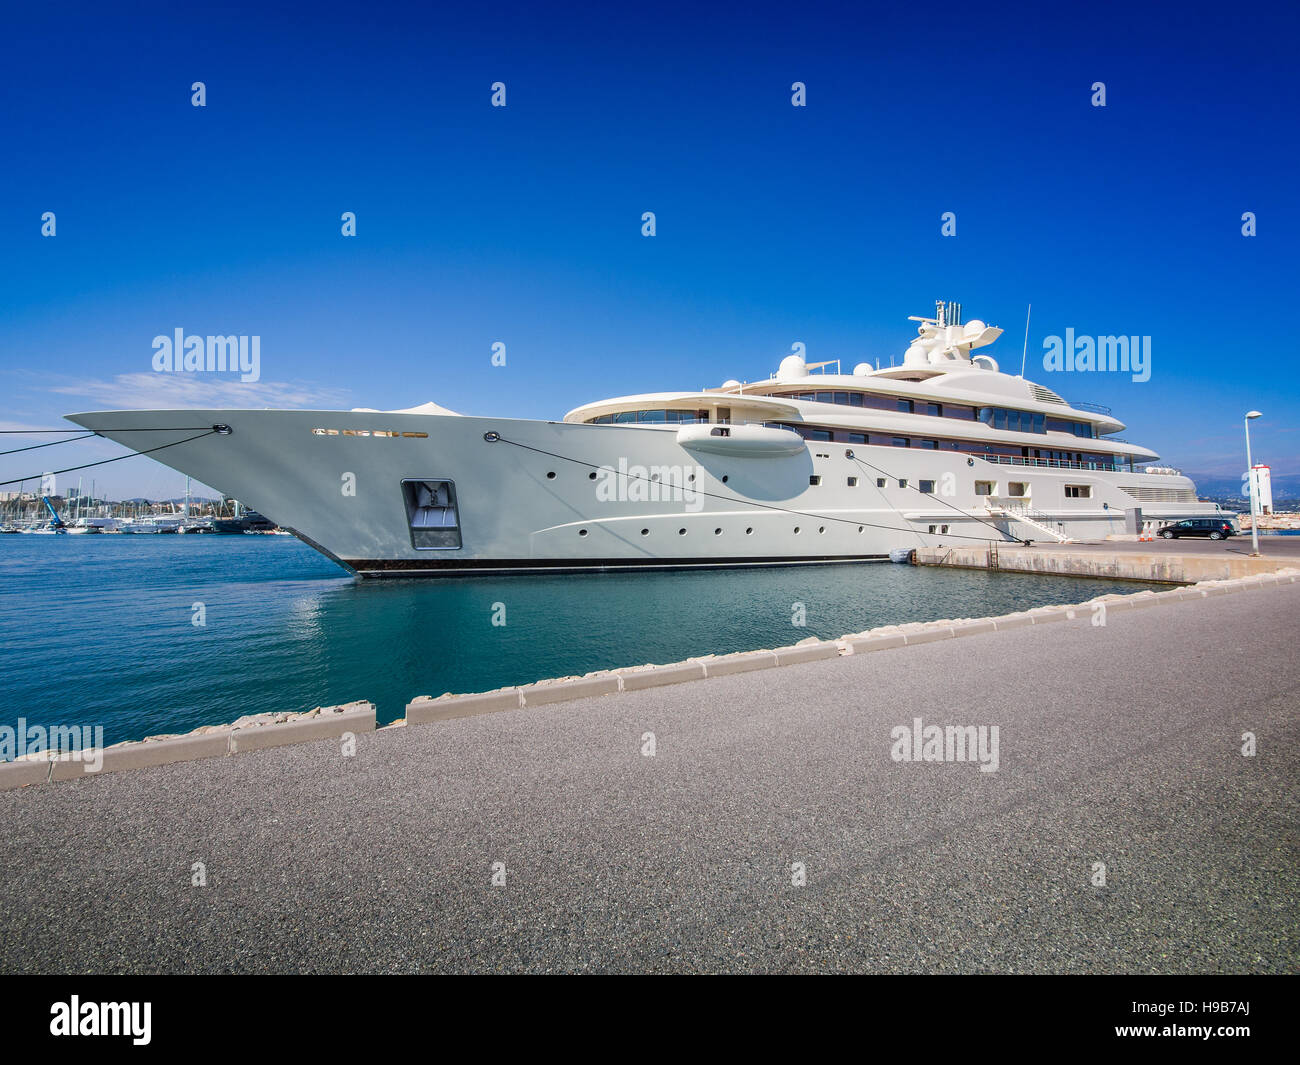 Mega yacht belonging to the very rich moored in the port of Antibes, France - Stock Image